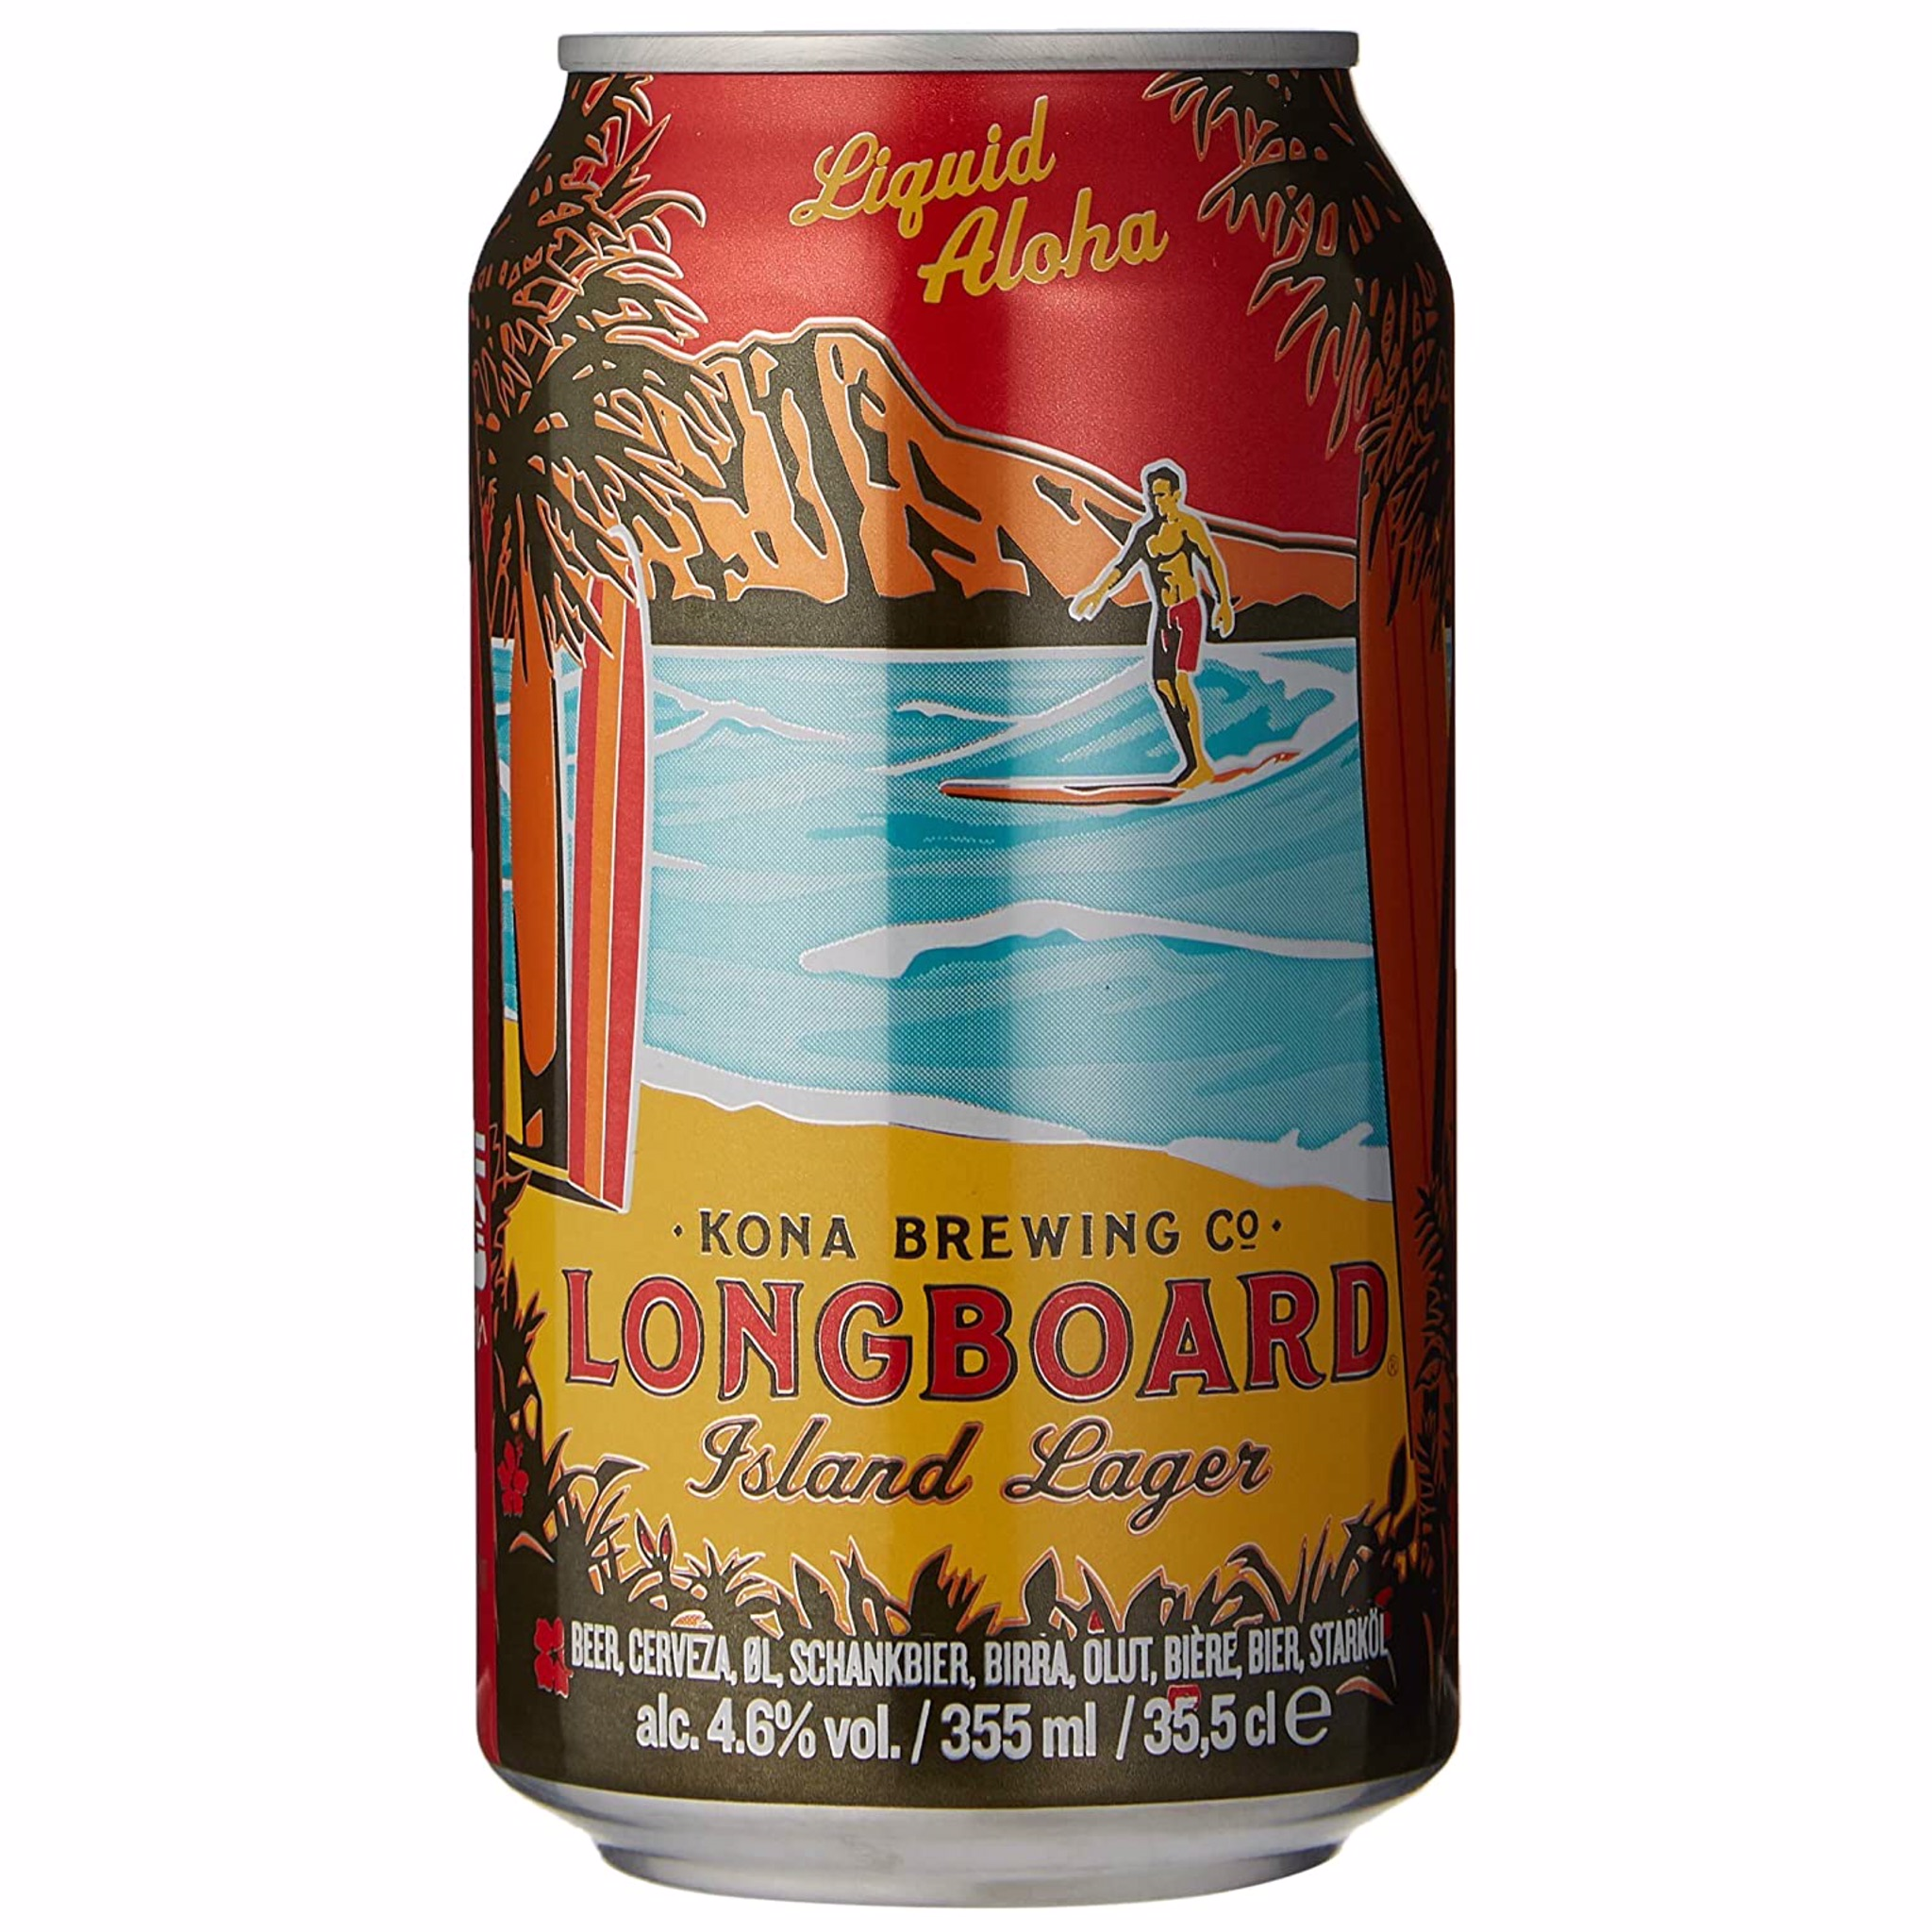 Longboard Island Lager 4.6% 355ml Kona Brewing